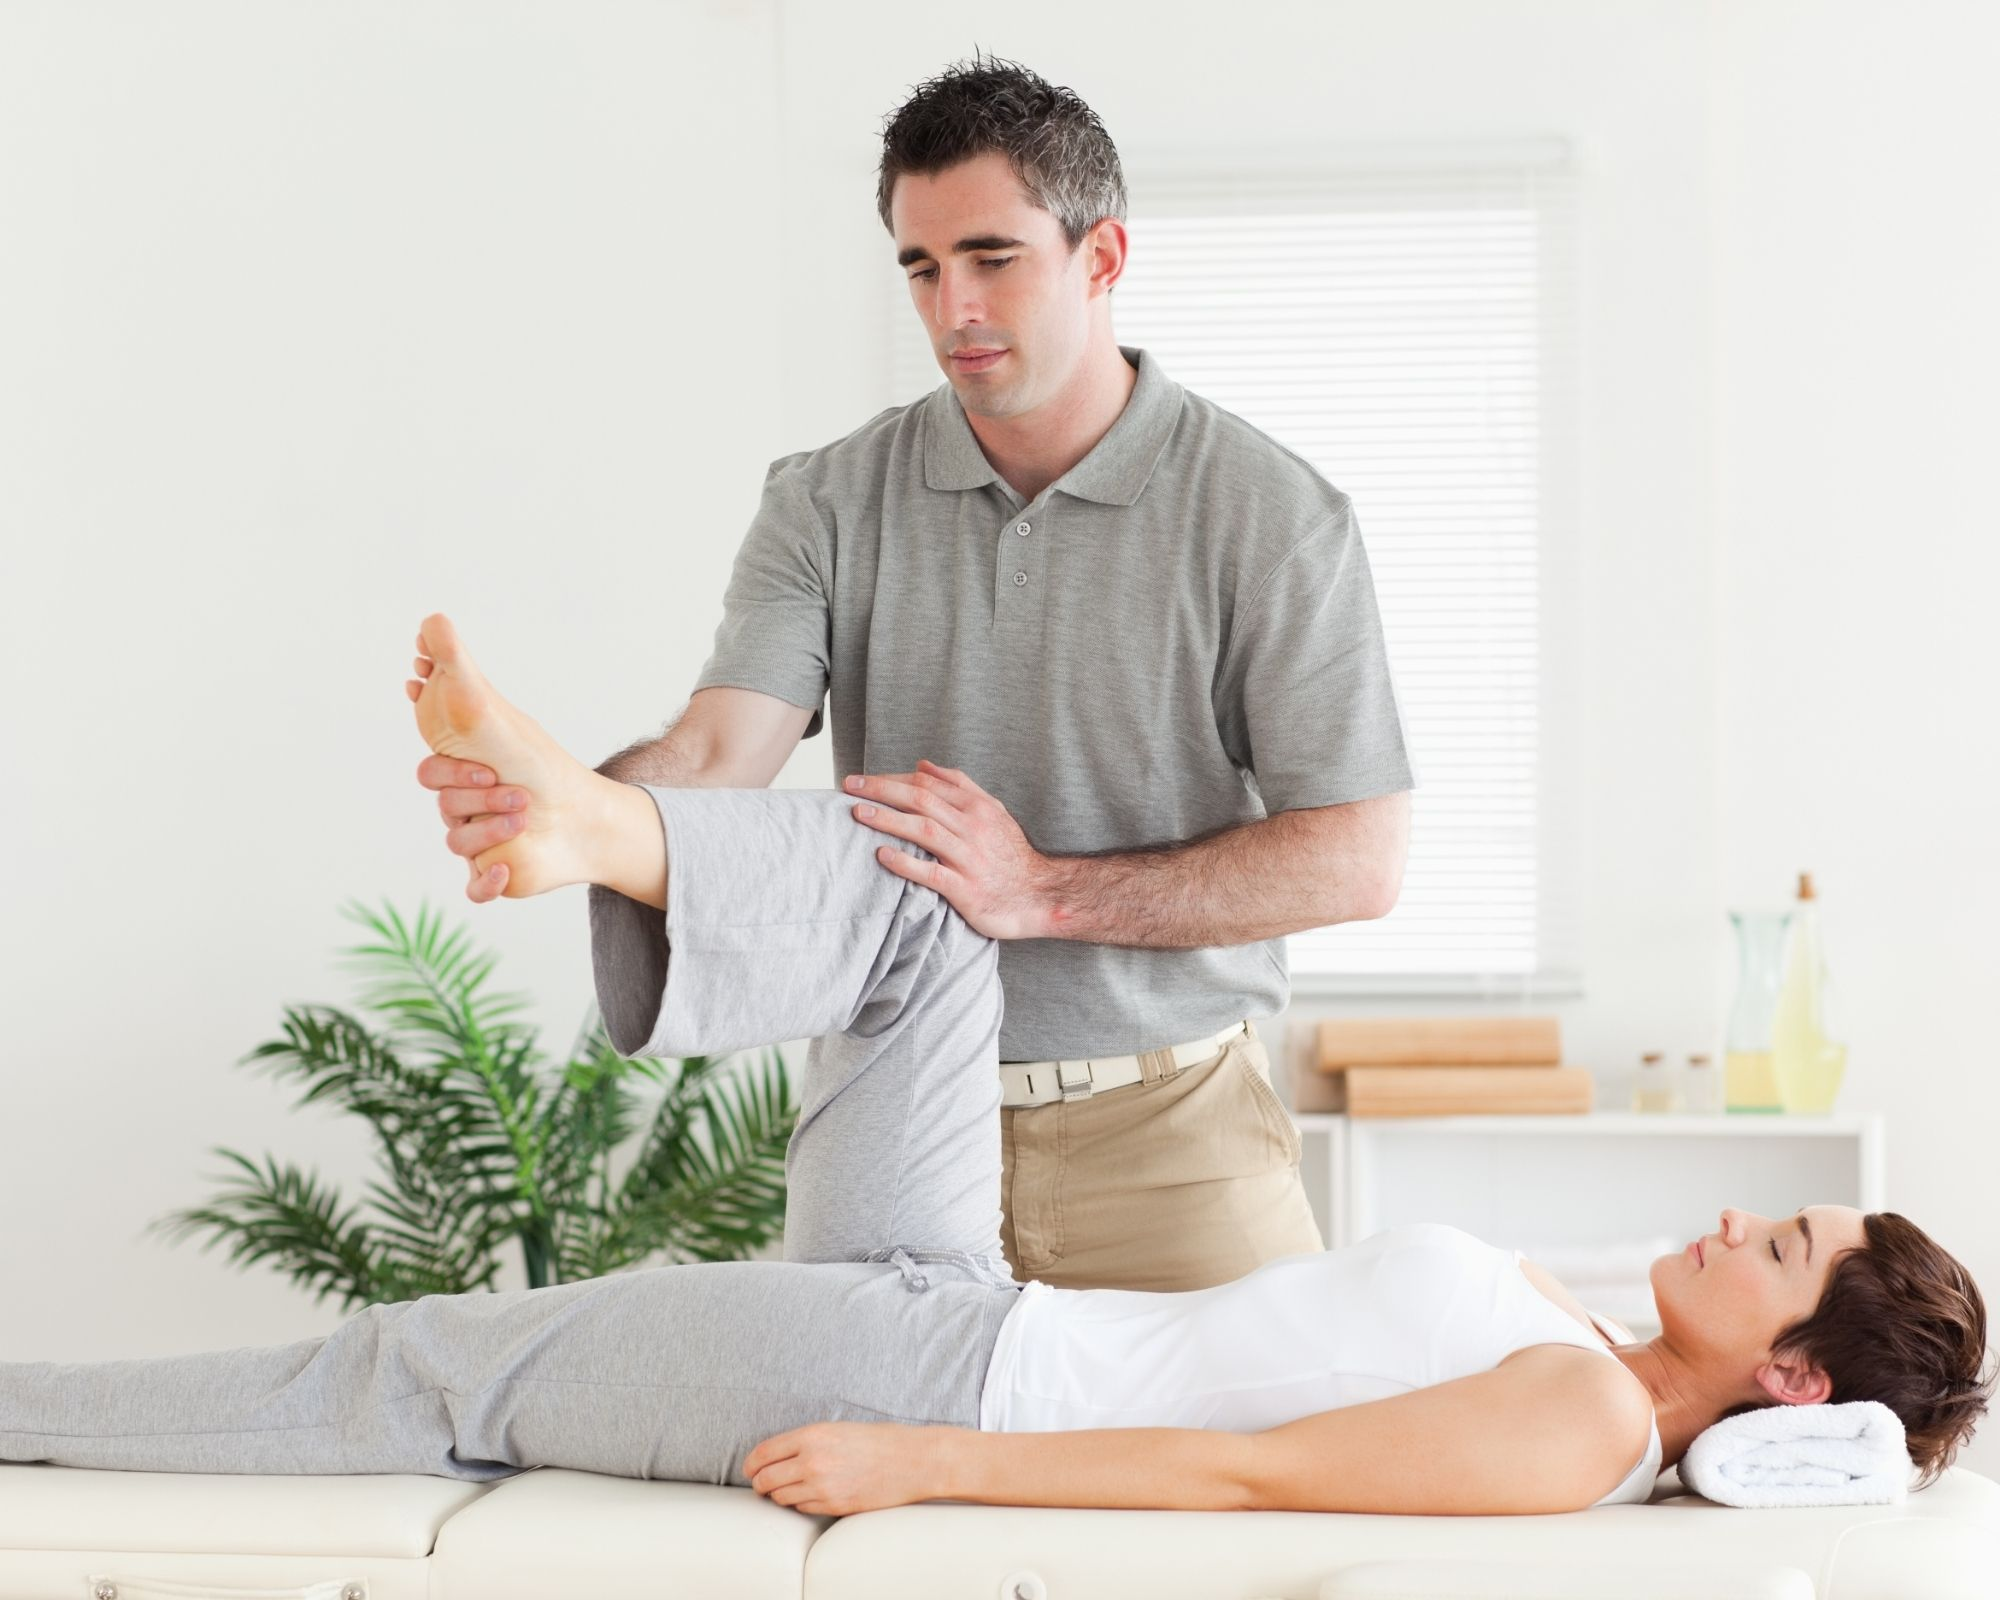 hip stretch by chiropractor or PT